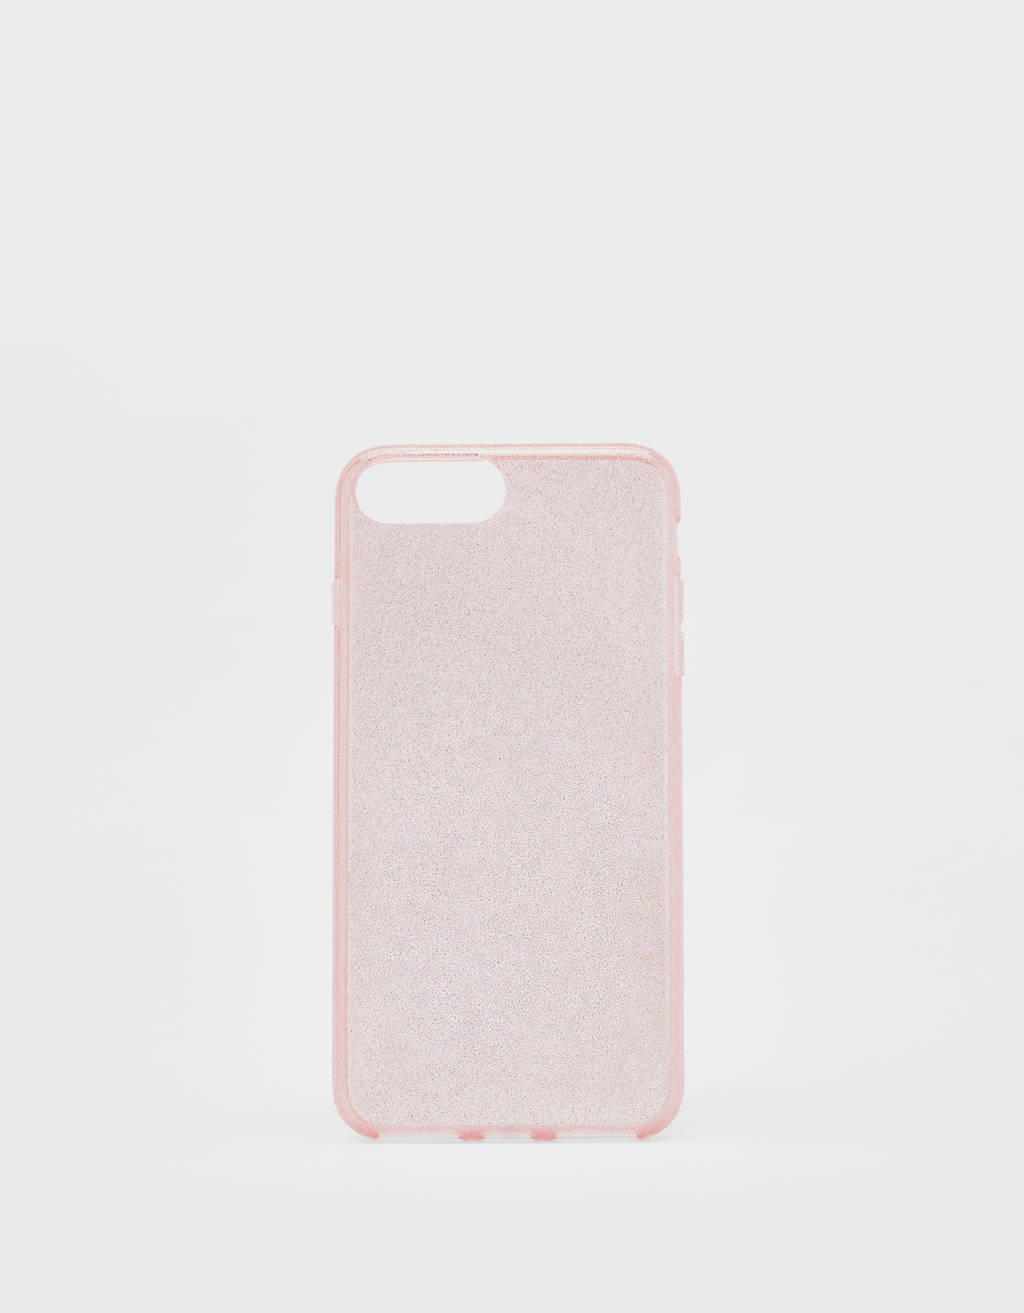 Glitter iPhone 6 Plus / 7 Plus / 8 Plus case